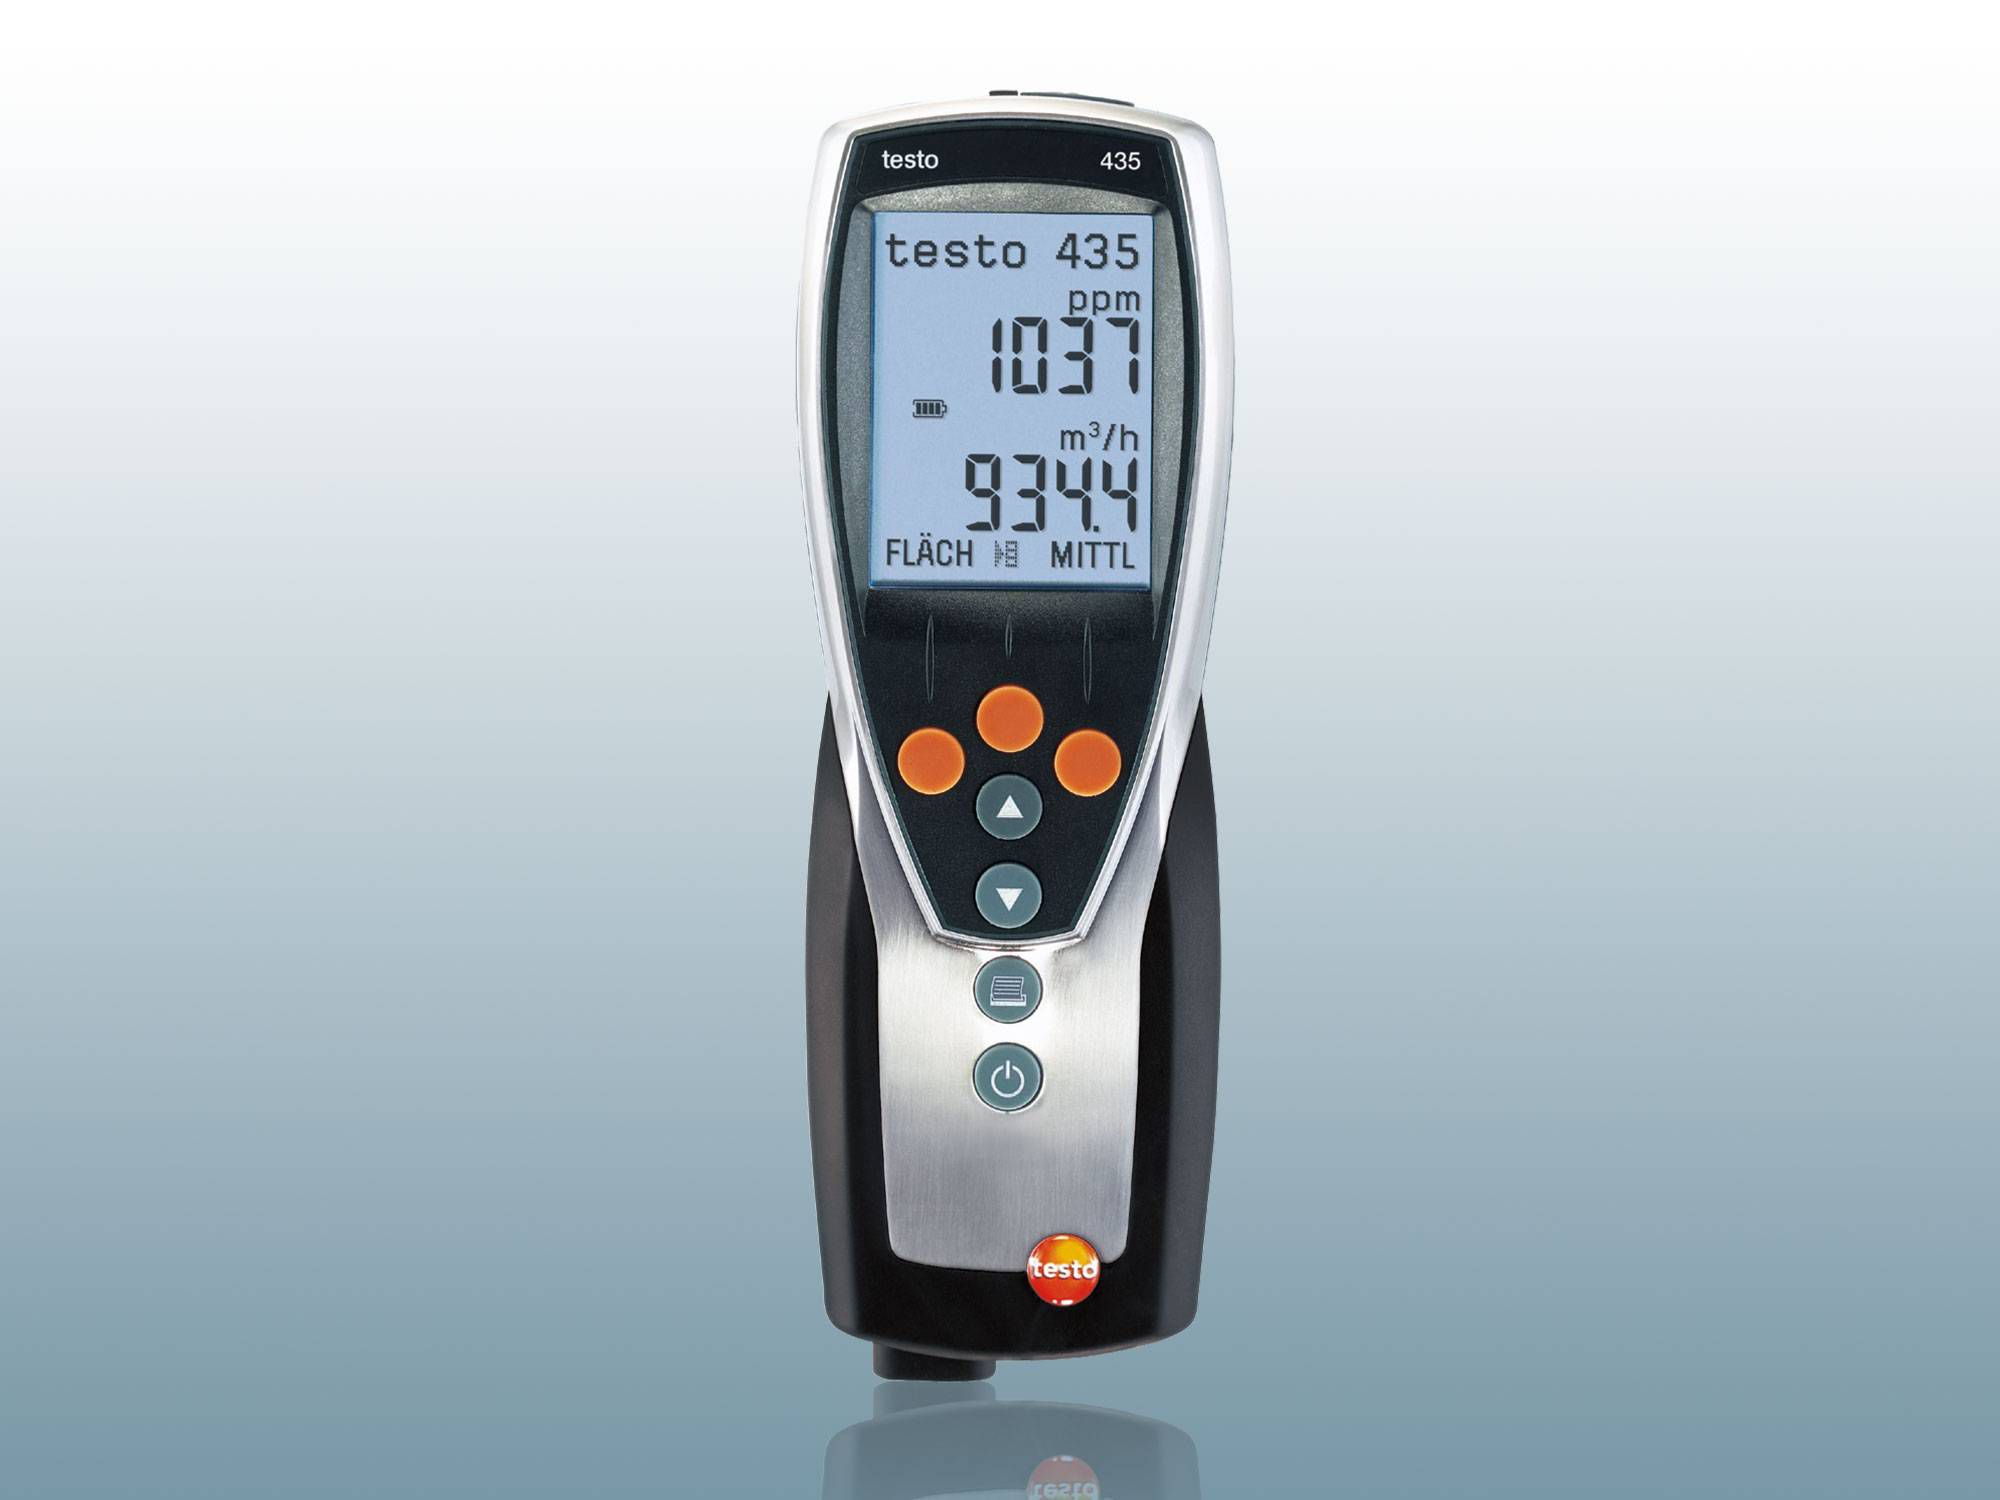 Testo's surface temperature meter